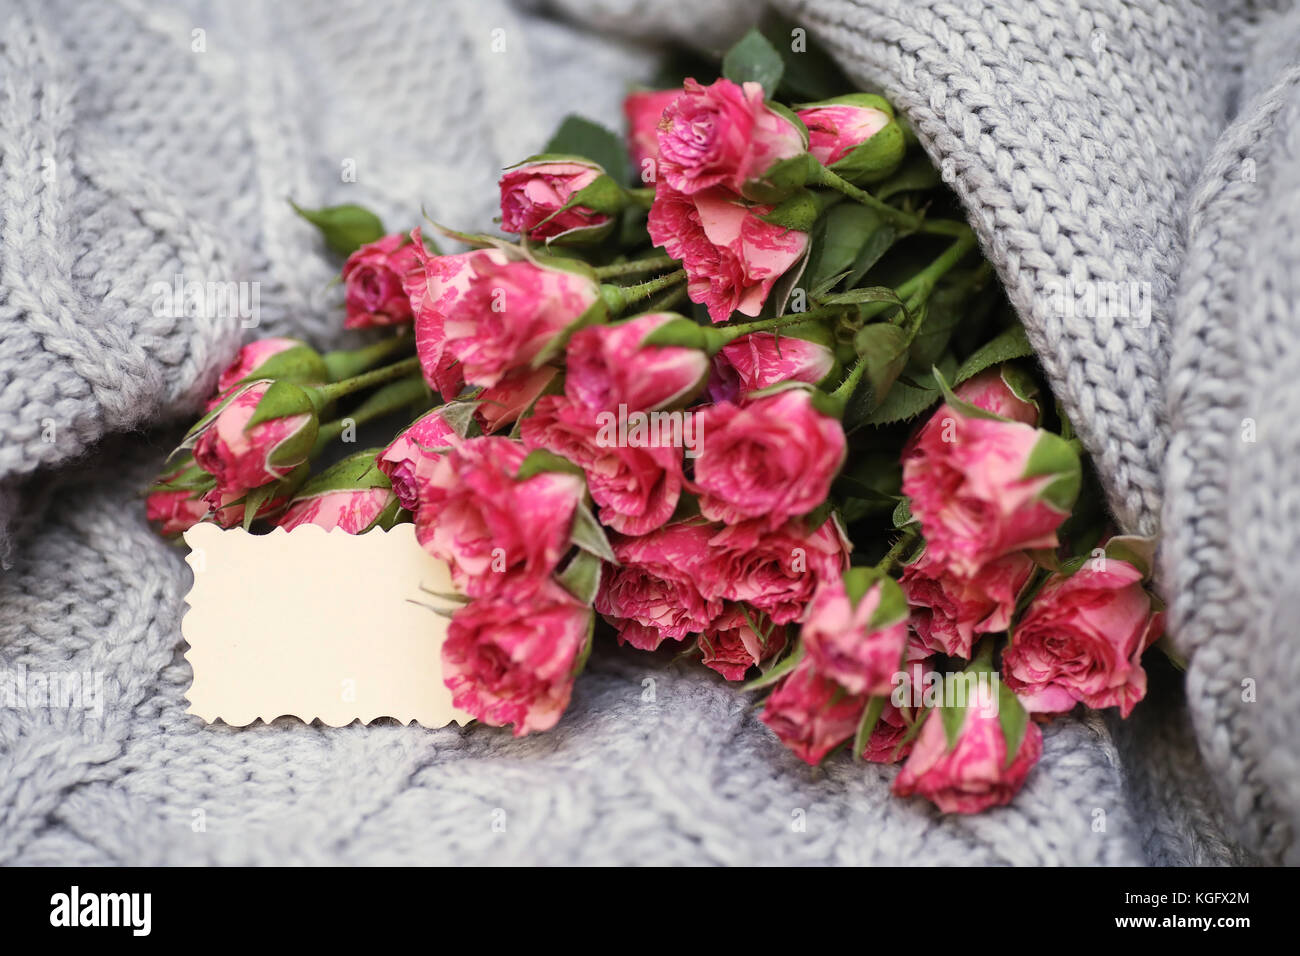 Bouquet Of Red Roses On Textile Sweater Stock Photo 165077548 Alamy